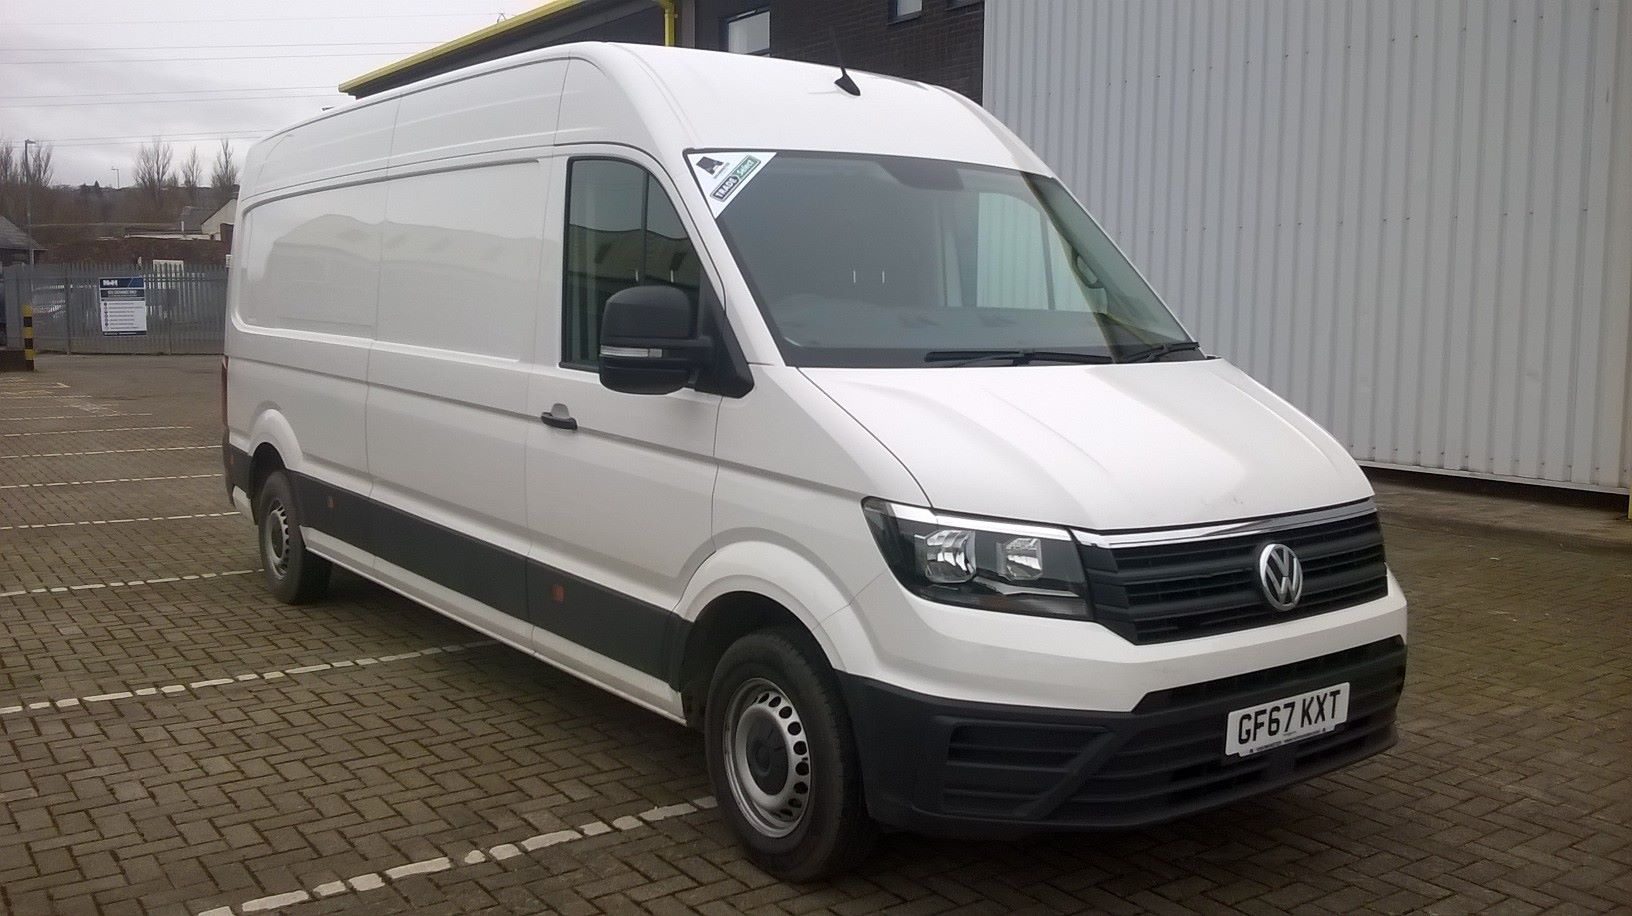 2017 Volkswagen Crafter CR35 LWB 2.0 TDI 136PS HIGH ROOF EURO 6 * RESTRICTED TO 60MPH *  (GF67KXT)